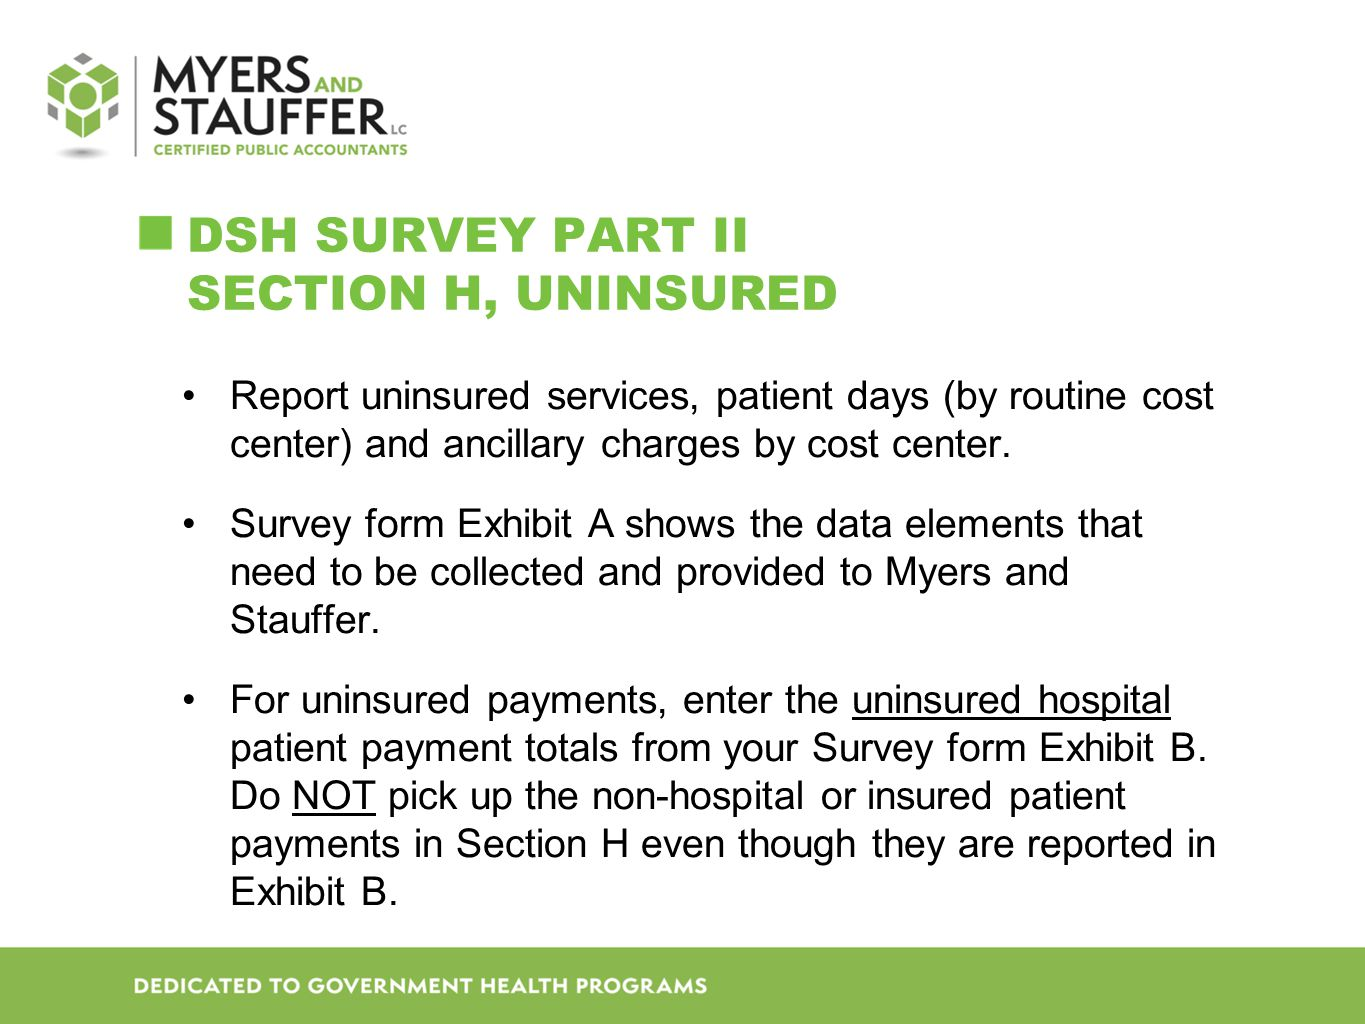 DSH SURVEY PART II SECTION H, UNINSURED Report uninsured services, patient days (by routine cost center) and ancillary charges by cost center.